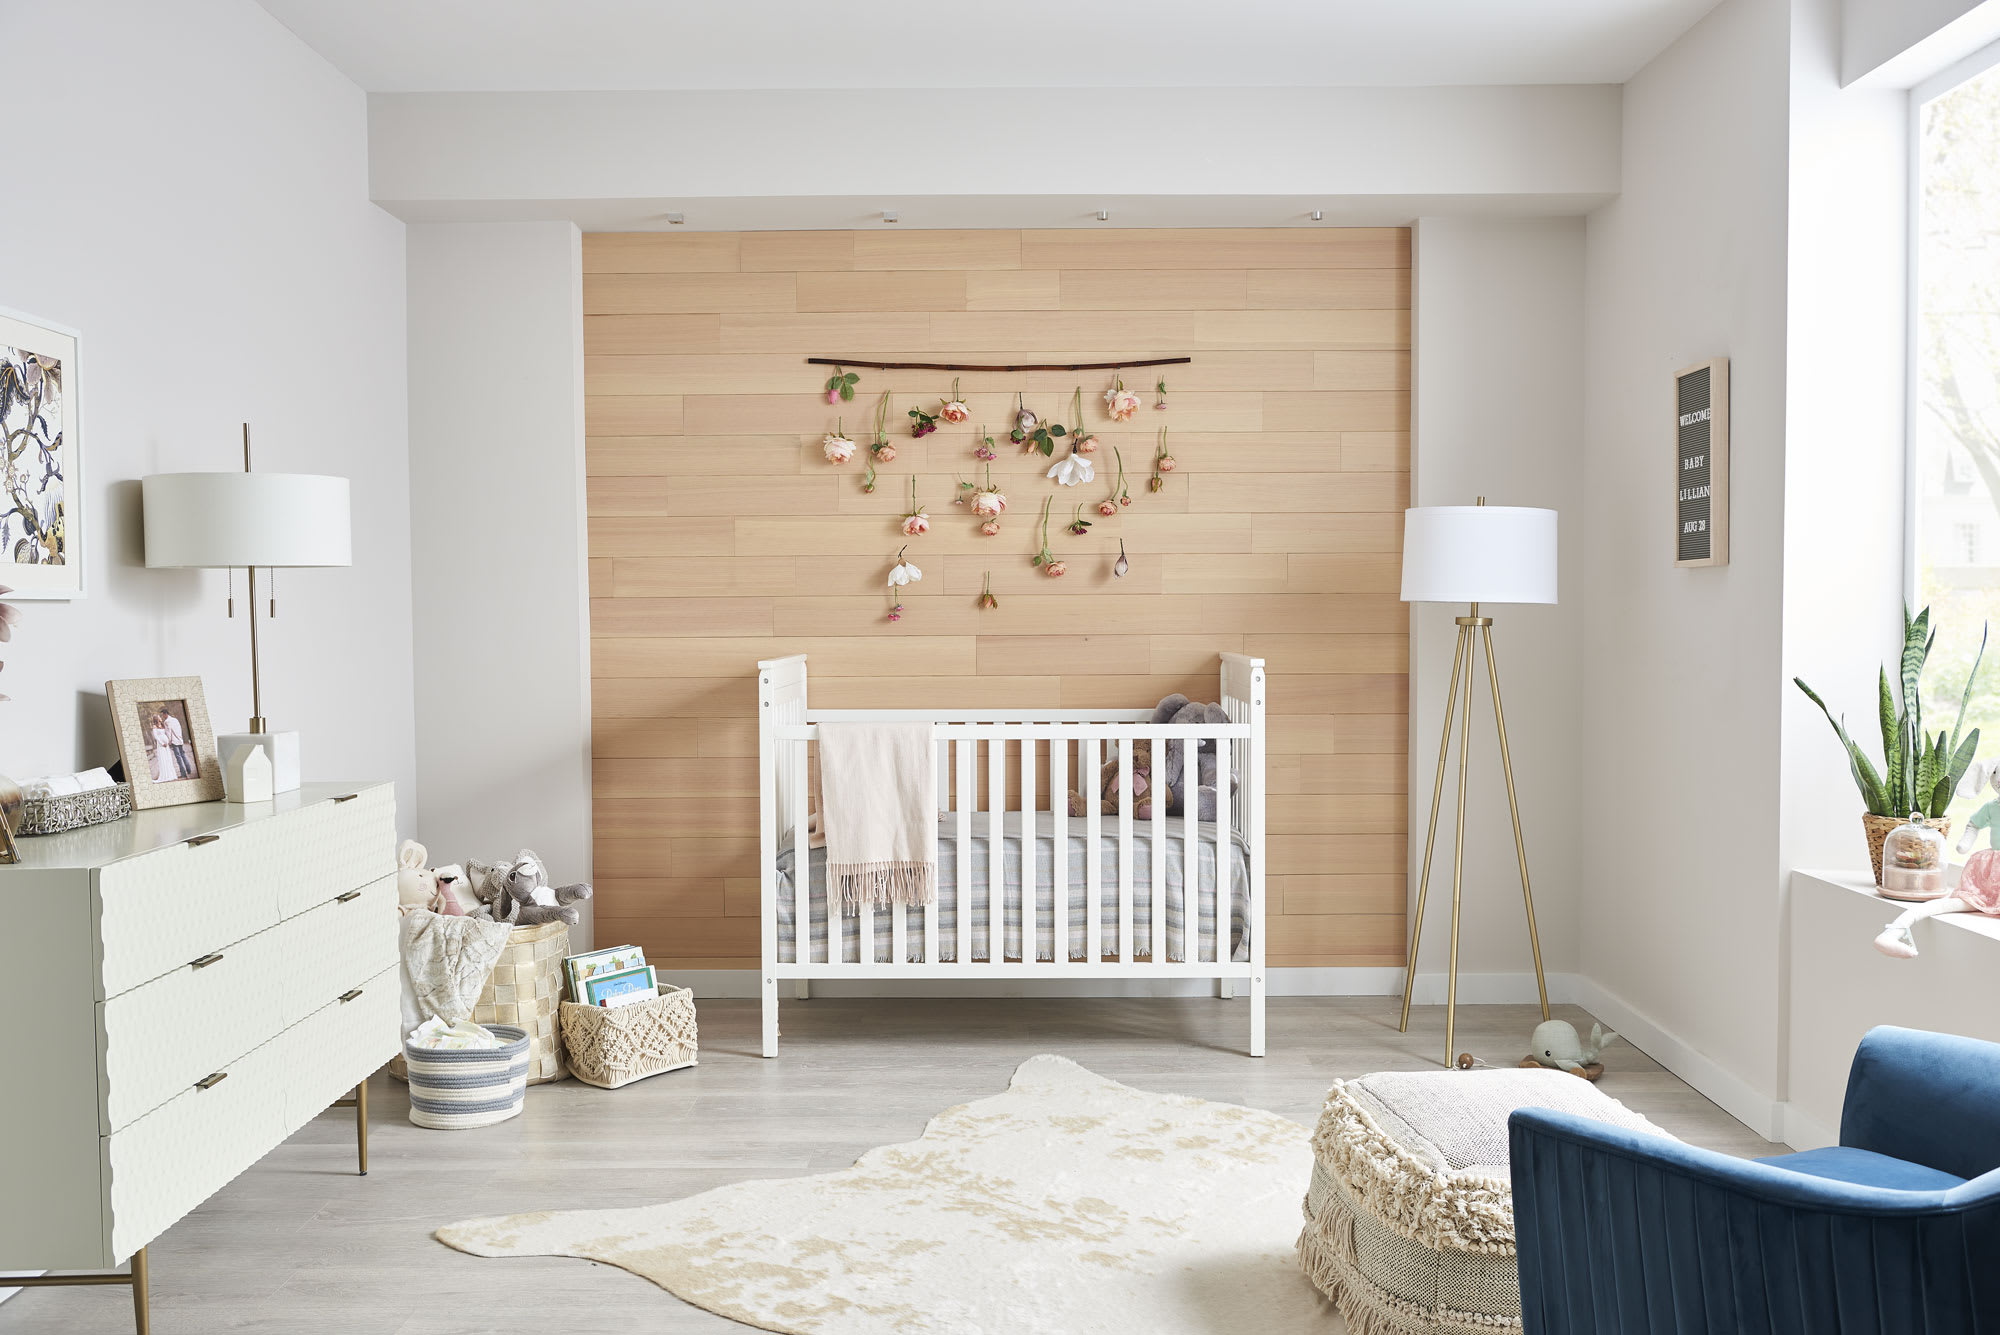 White walls and crib in a nursery with a vertical grain natural peel and stik wood accent wall.